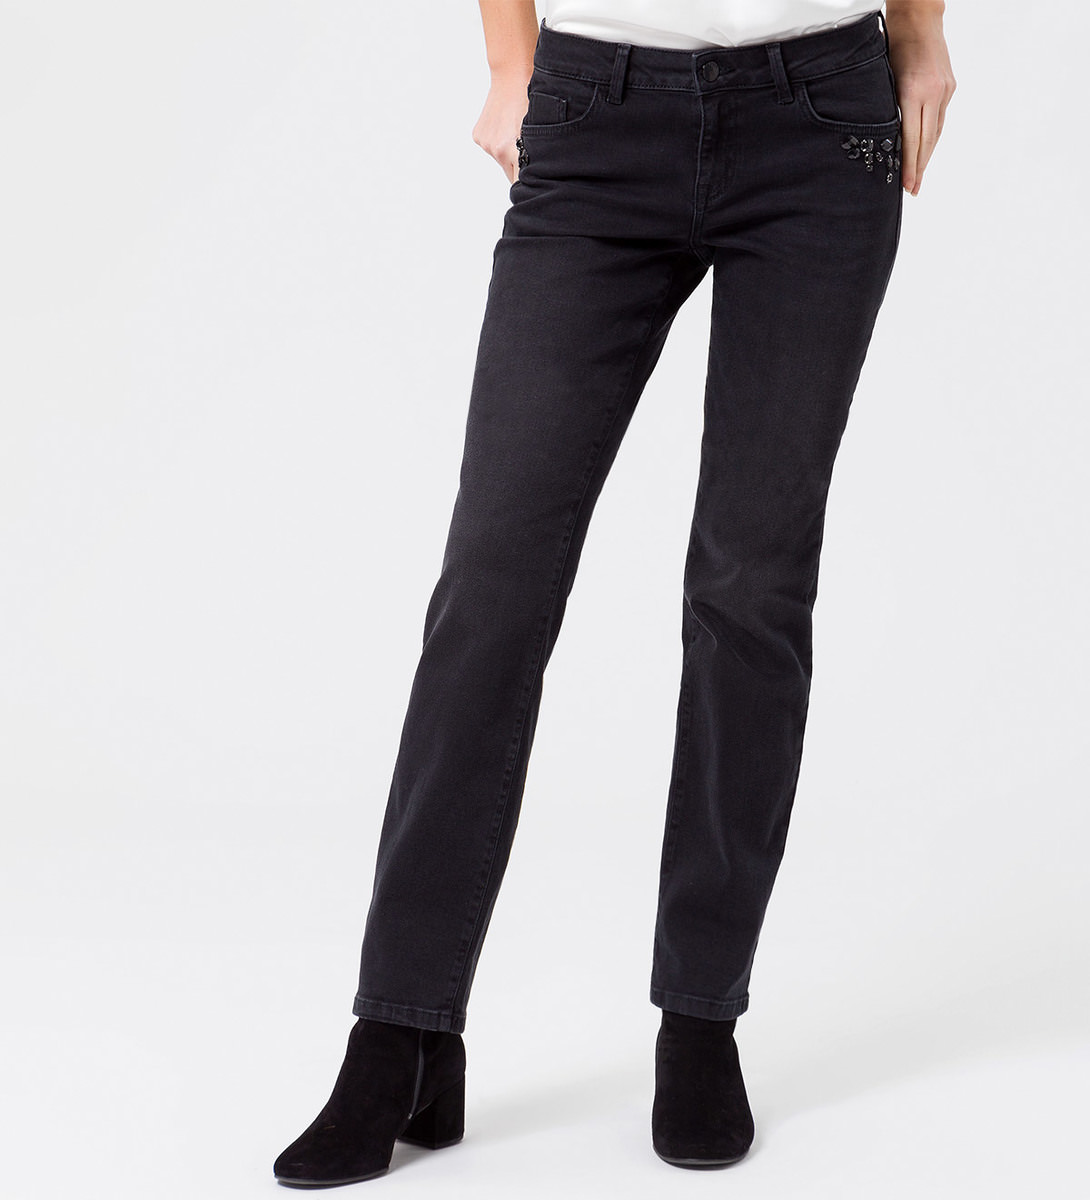 Jeans mit dezenten Applikationen 32 Inch in black washed